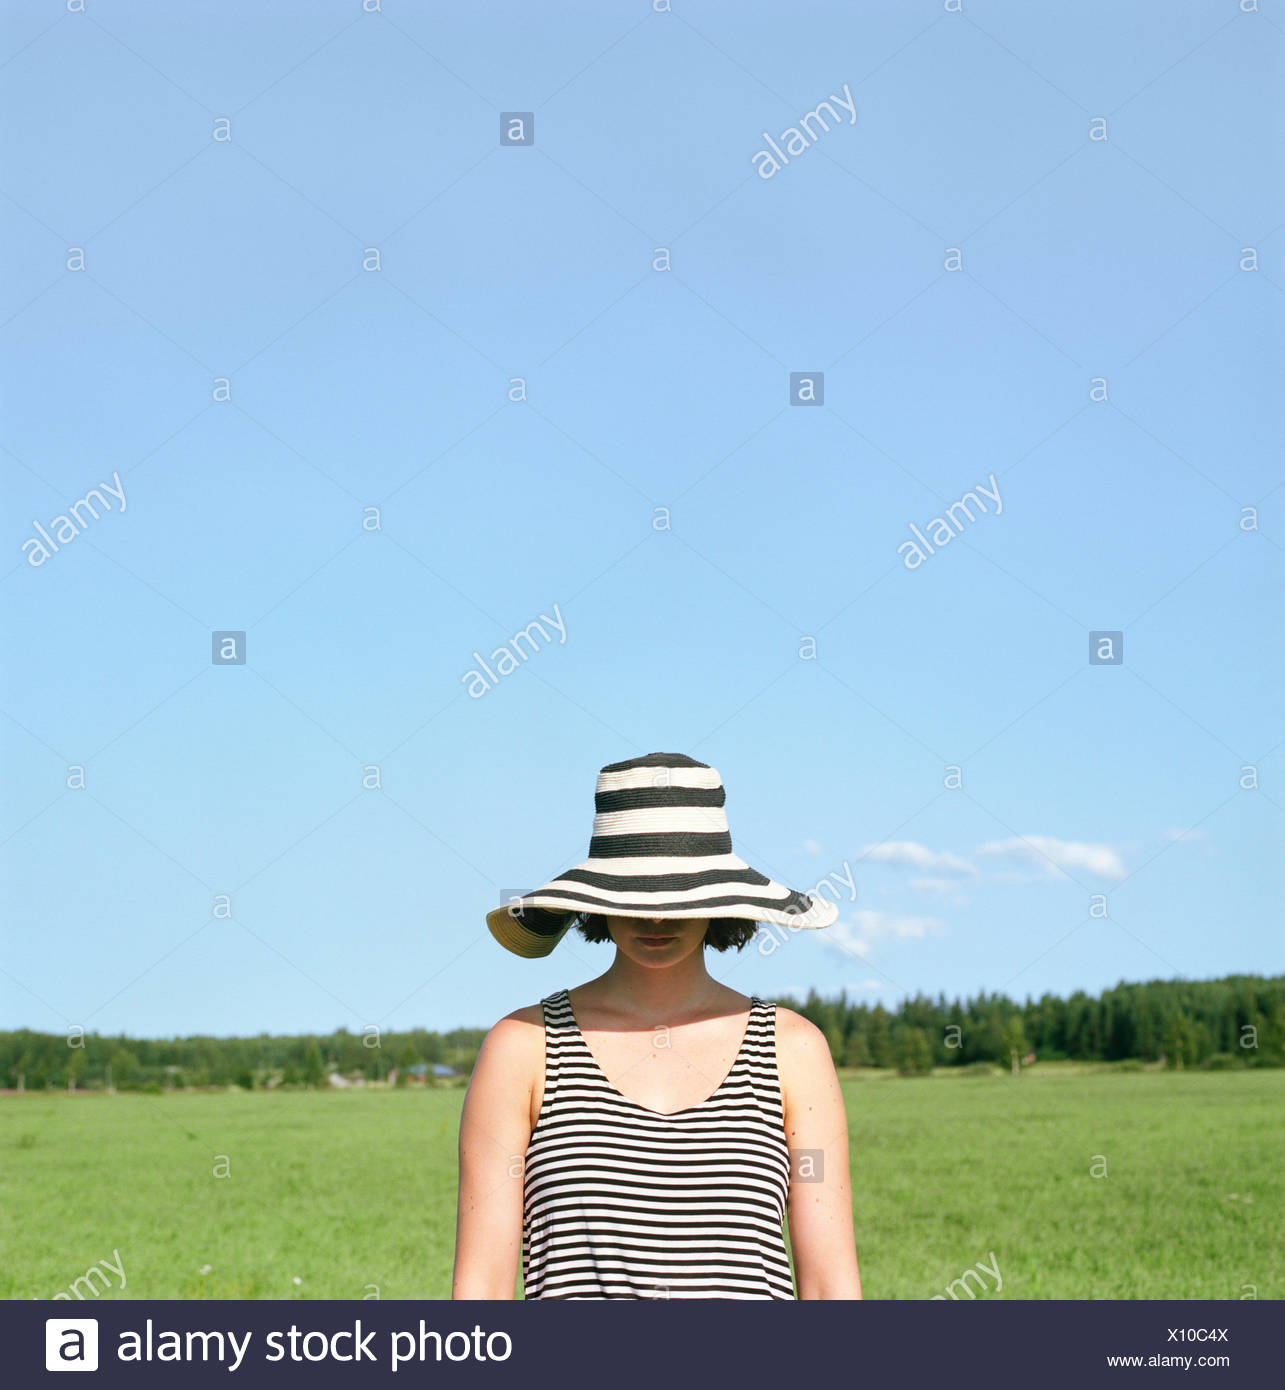 La Finlande, Uusimaa, Lapinjarvi, Woman wearing hat couvrant son visage Photo Stock